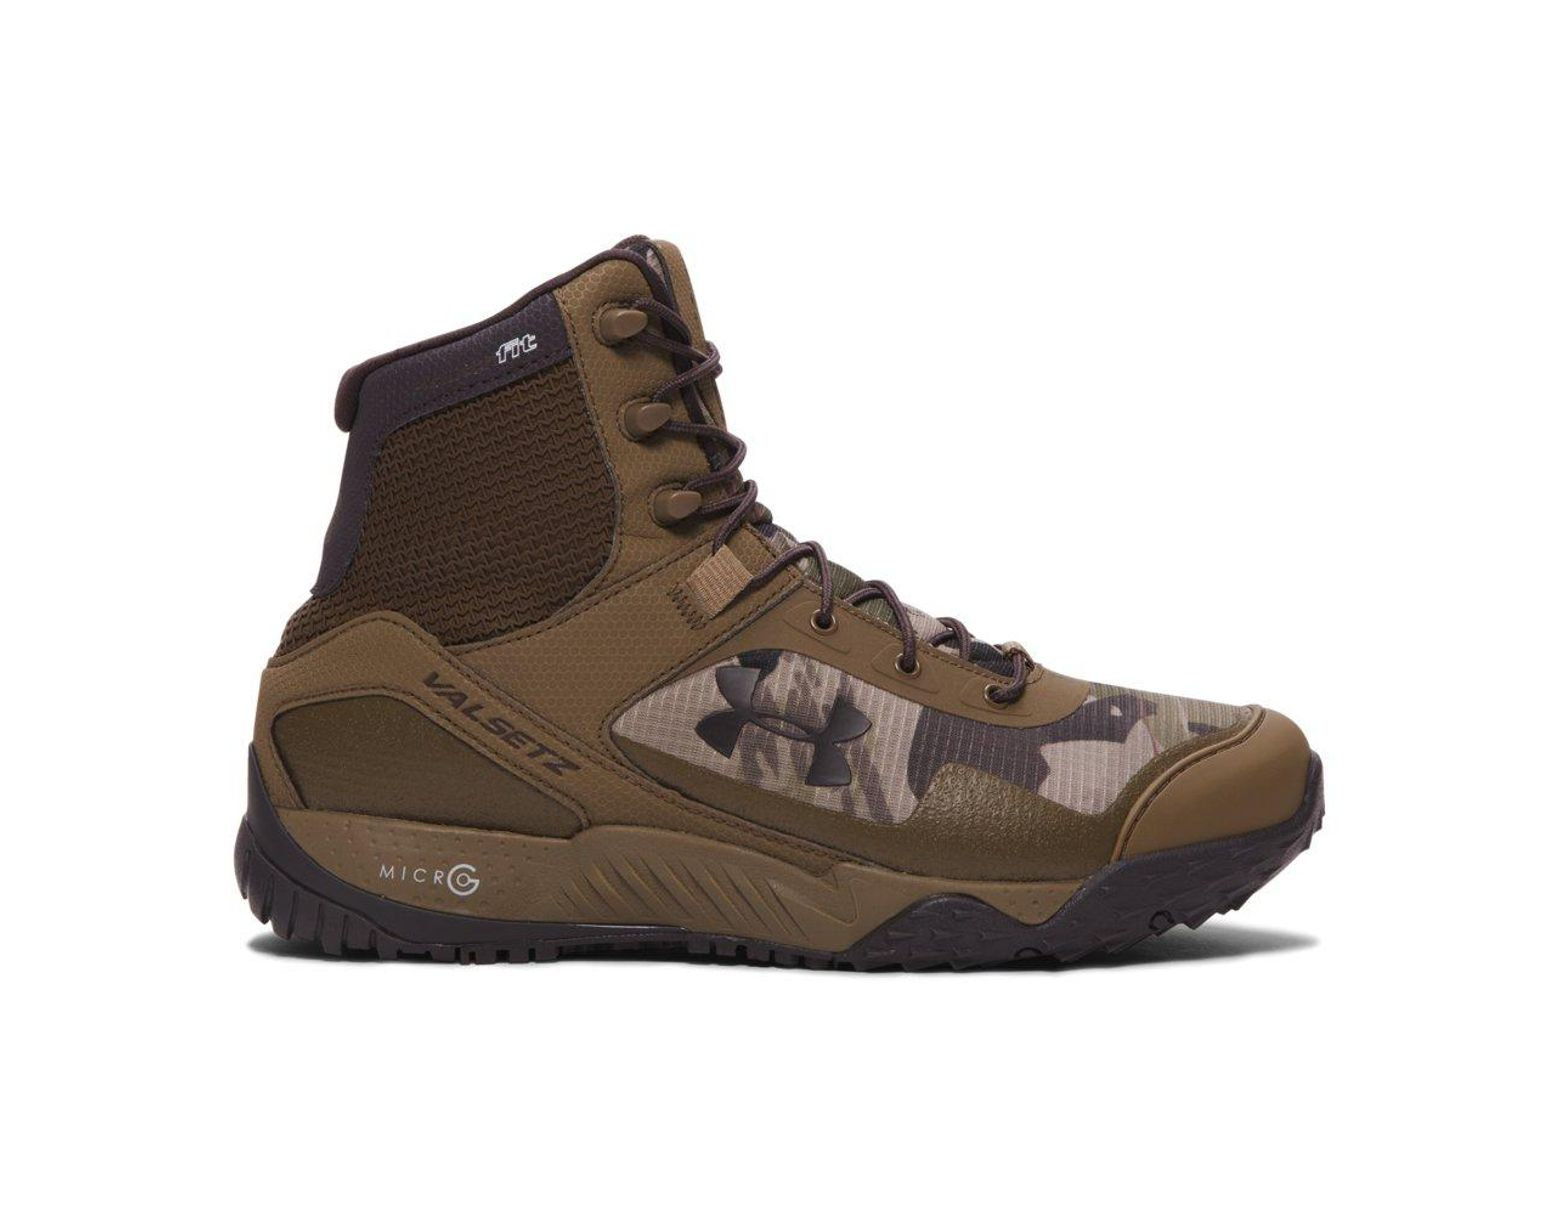 fe077a52c Under Armour Men's Ua Speed Freek Bozeman Hunting Boots – Wide (4e) in  Brown for Men - Save 69% - Lyst